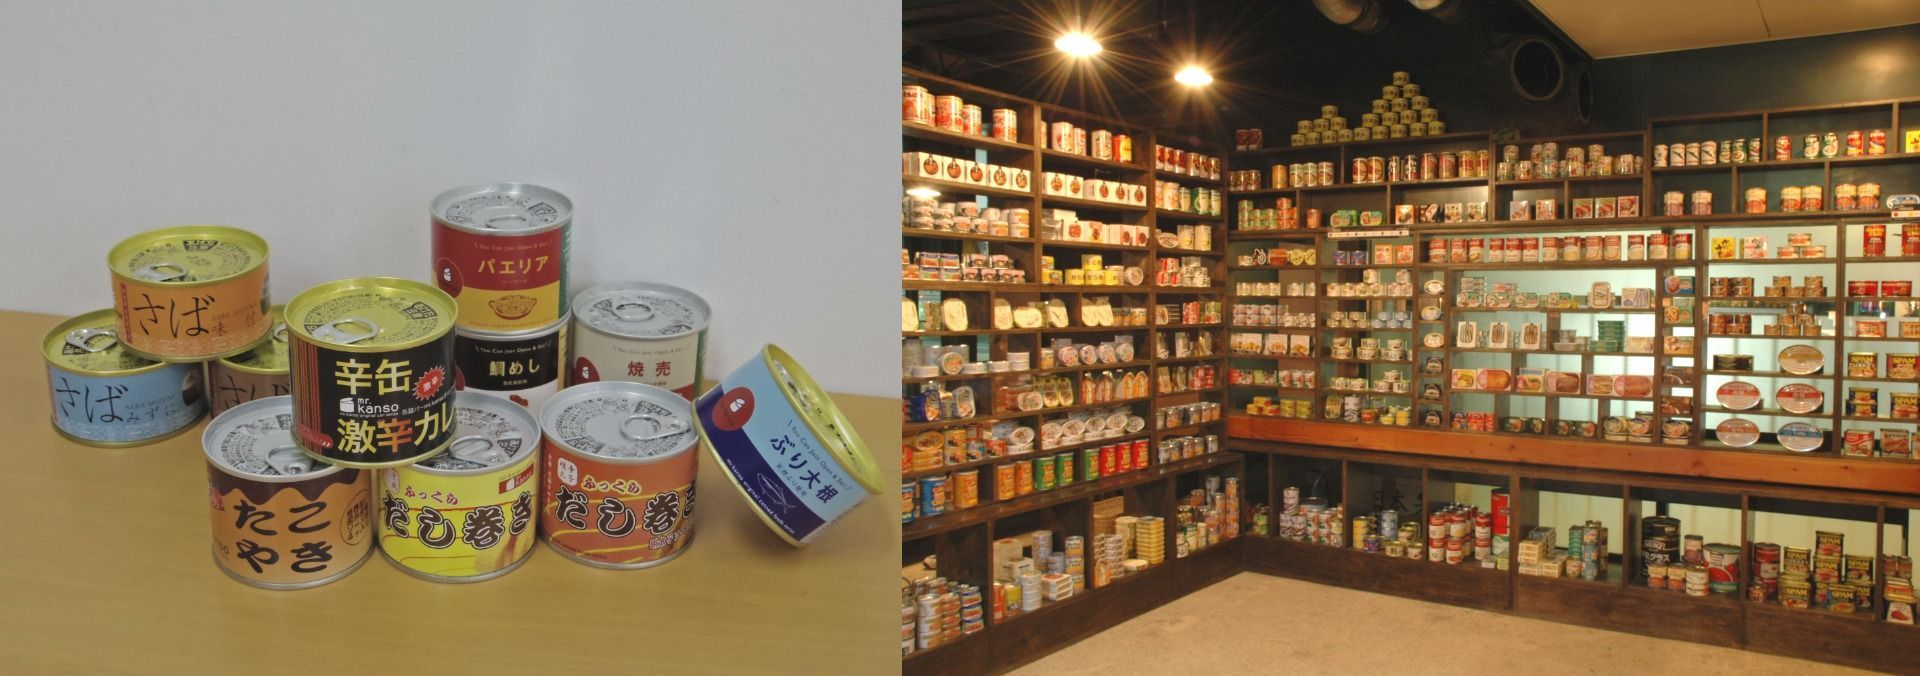 Canned Food Bar Mr. Kanso